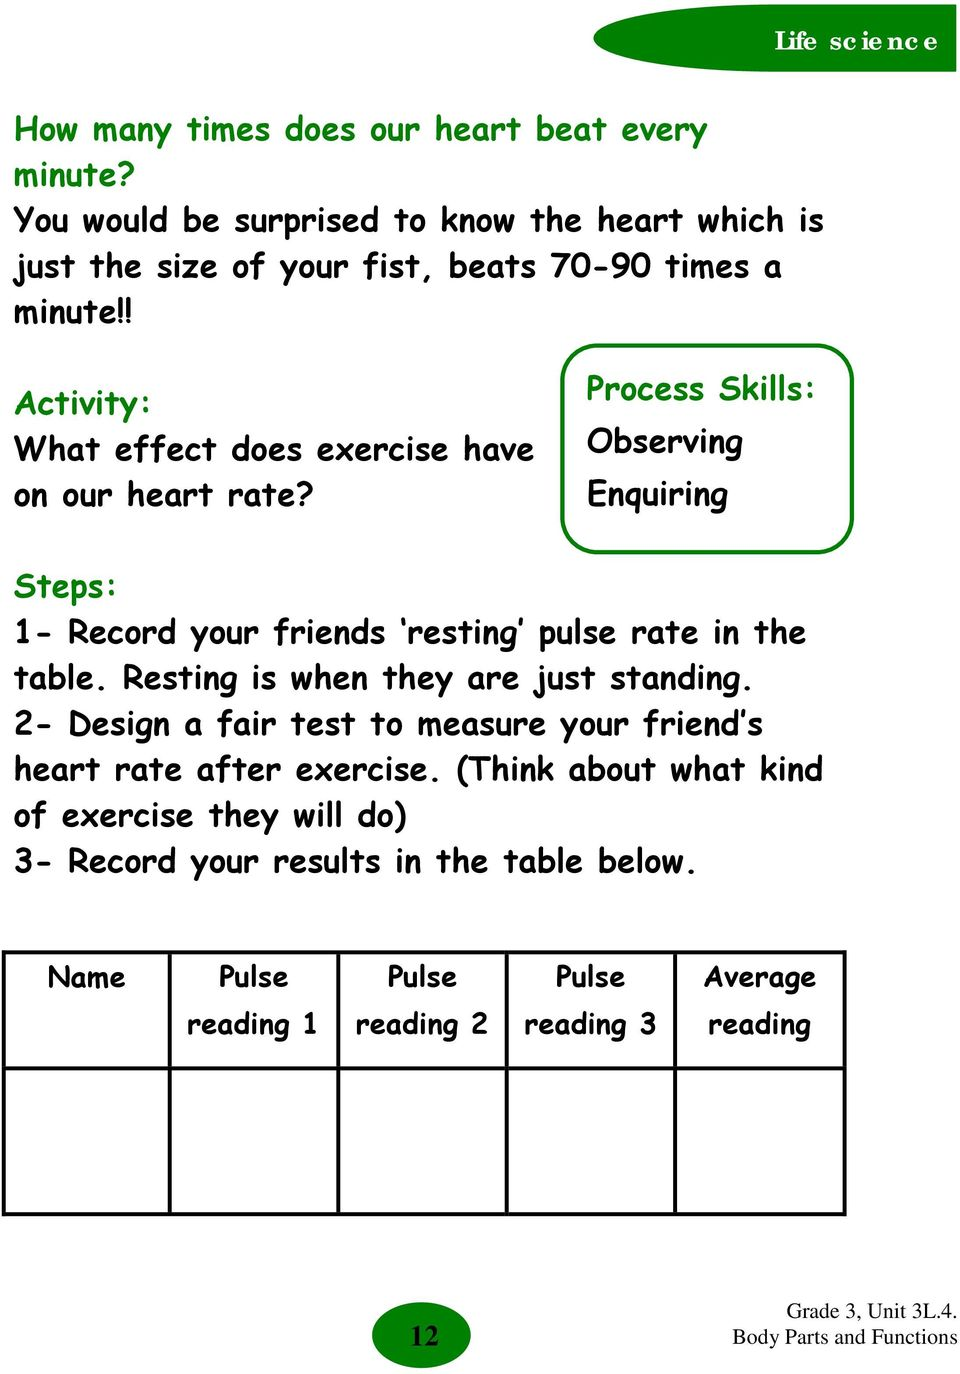 ! Activity: What effect does exercise have on our heart rate?